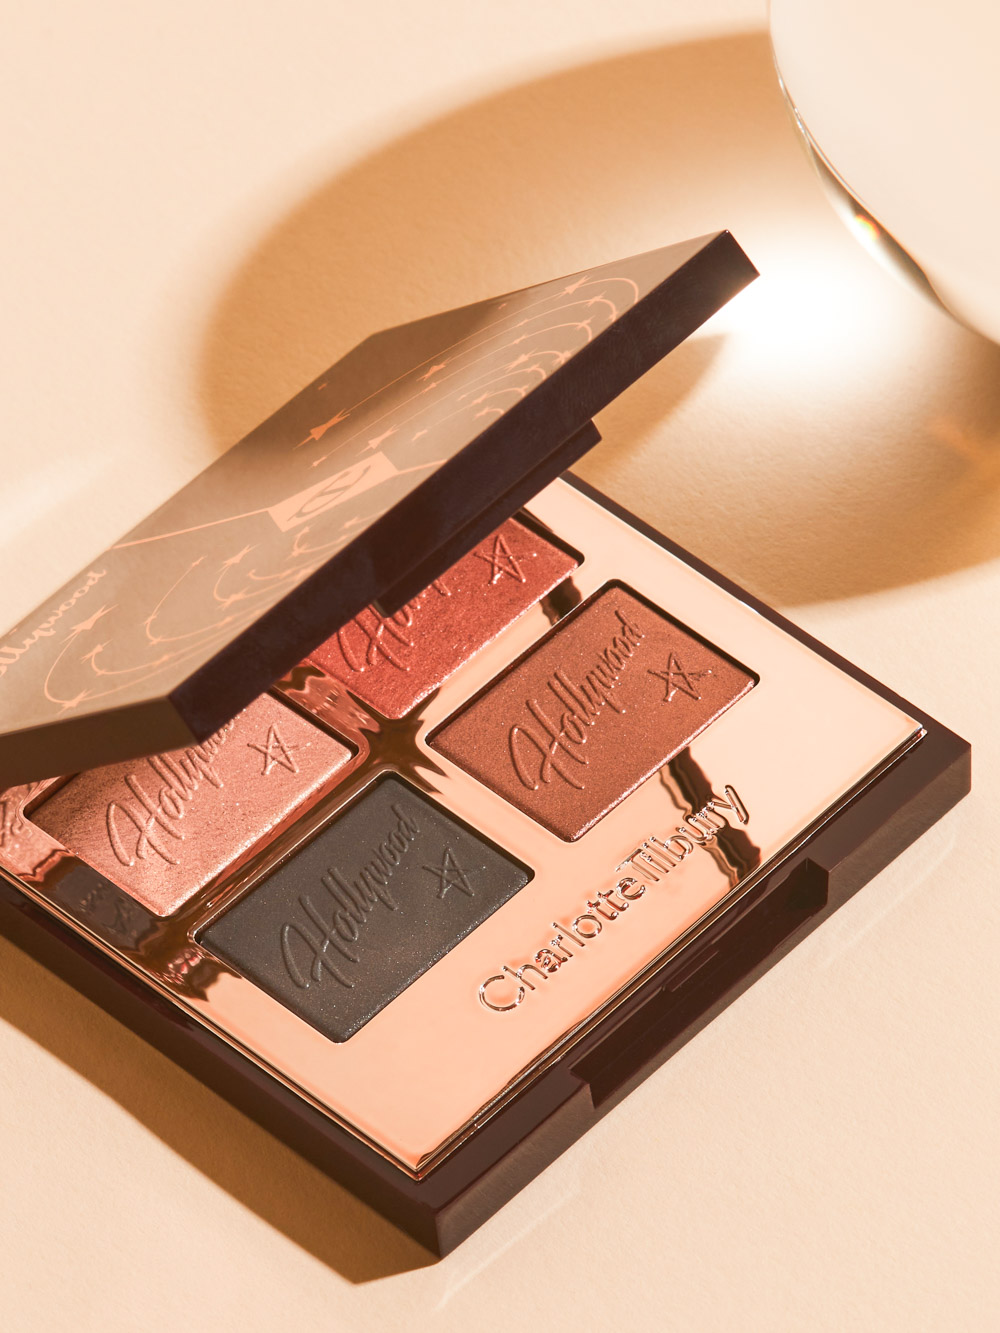 A beauty editorial about this year's spring summer beauty collections, from Charlotte Tilbury to YSL and Givenchy.